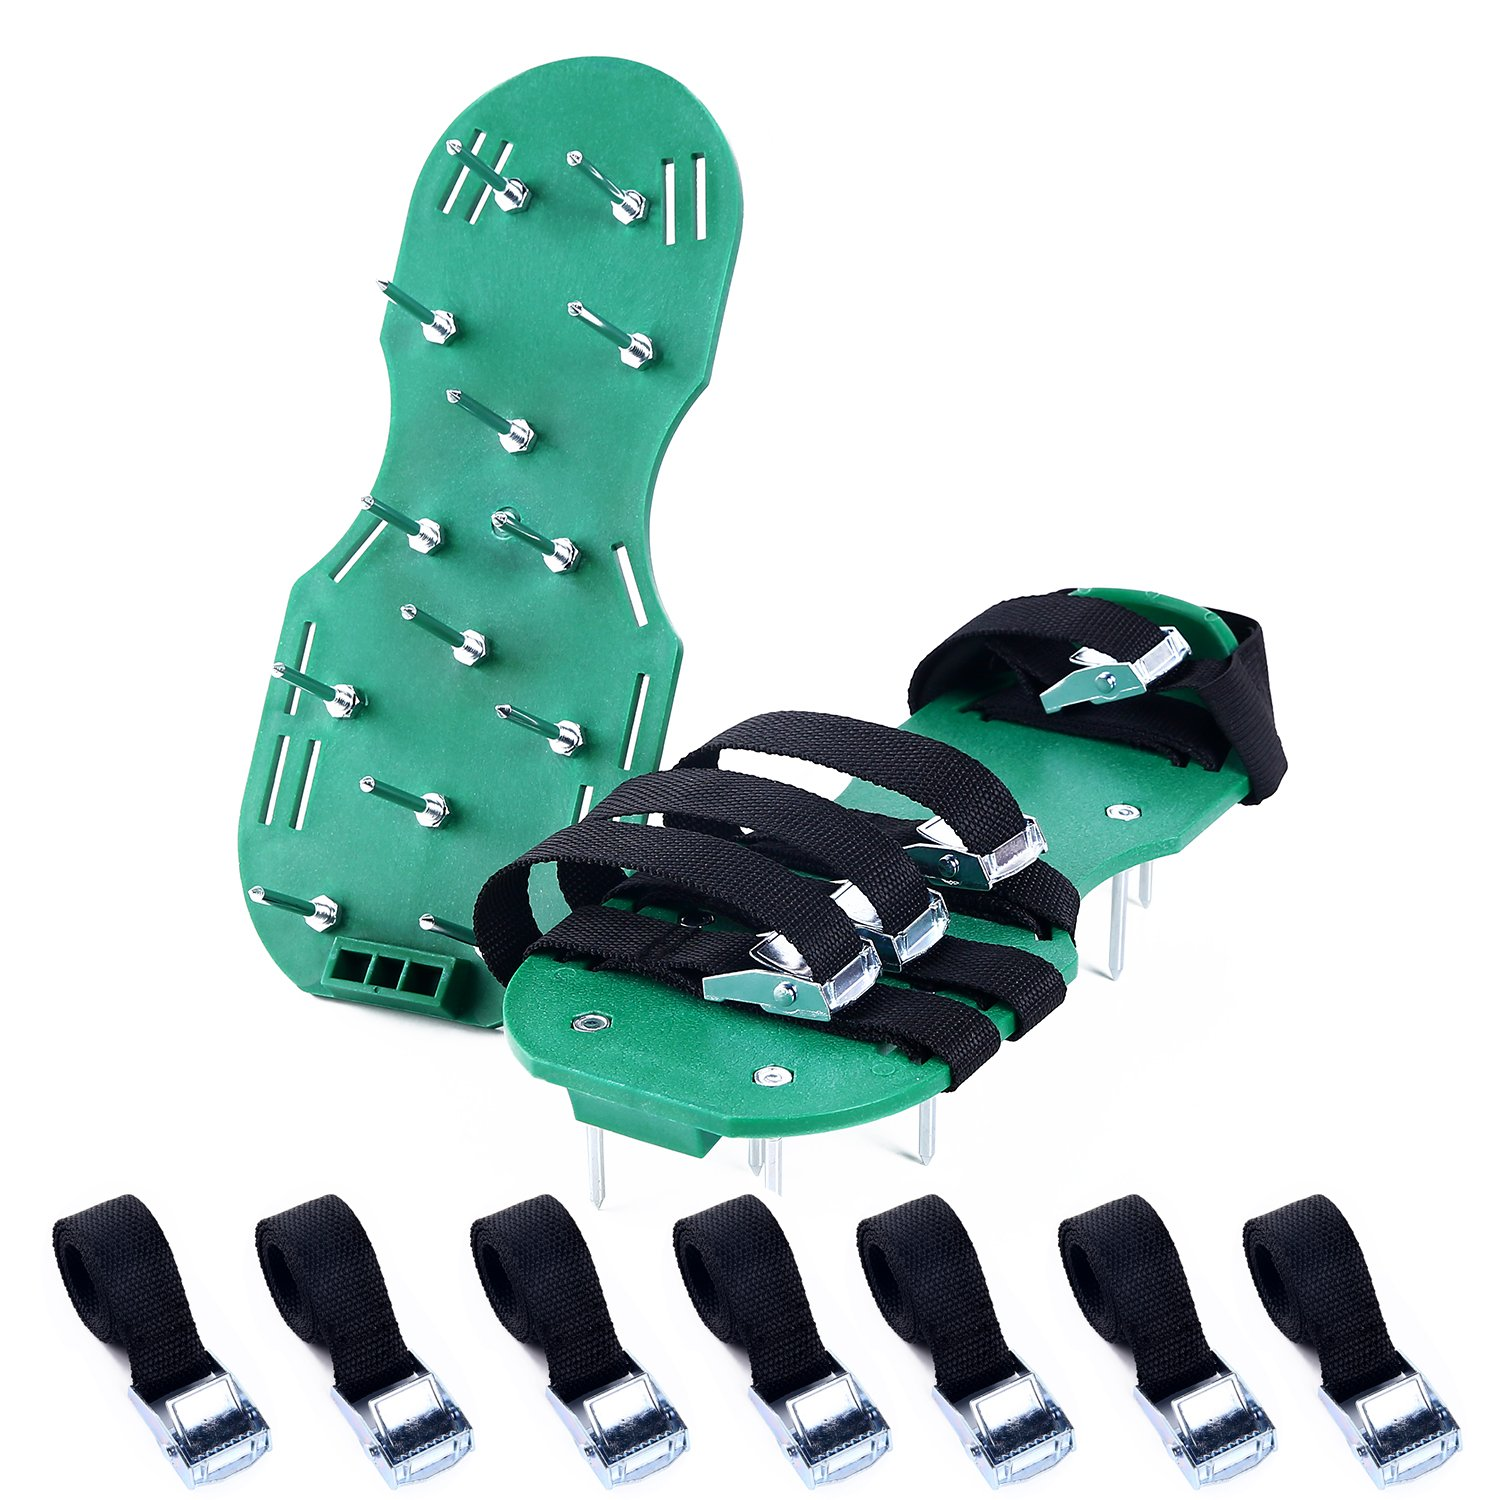 Ohuhu Lawn Aerator Shoes, 4 x Adjustable Aluminium Alloy Buckles & 1 x Heal Elastic Band Unique Design | Heavy Duty Spiked Sandals for Aerating Your Lawn or Yard